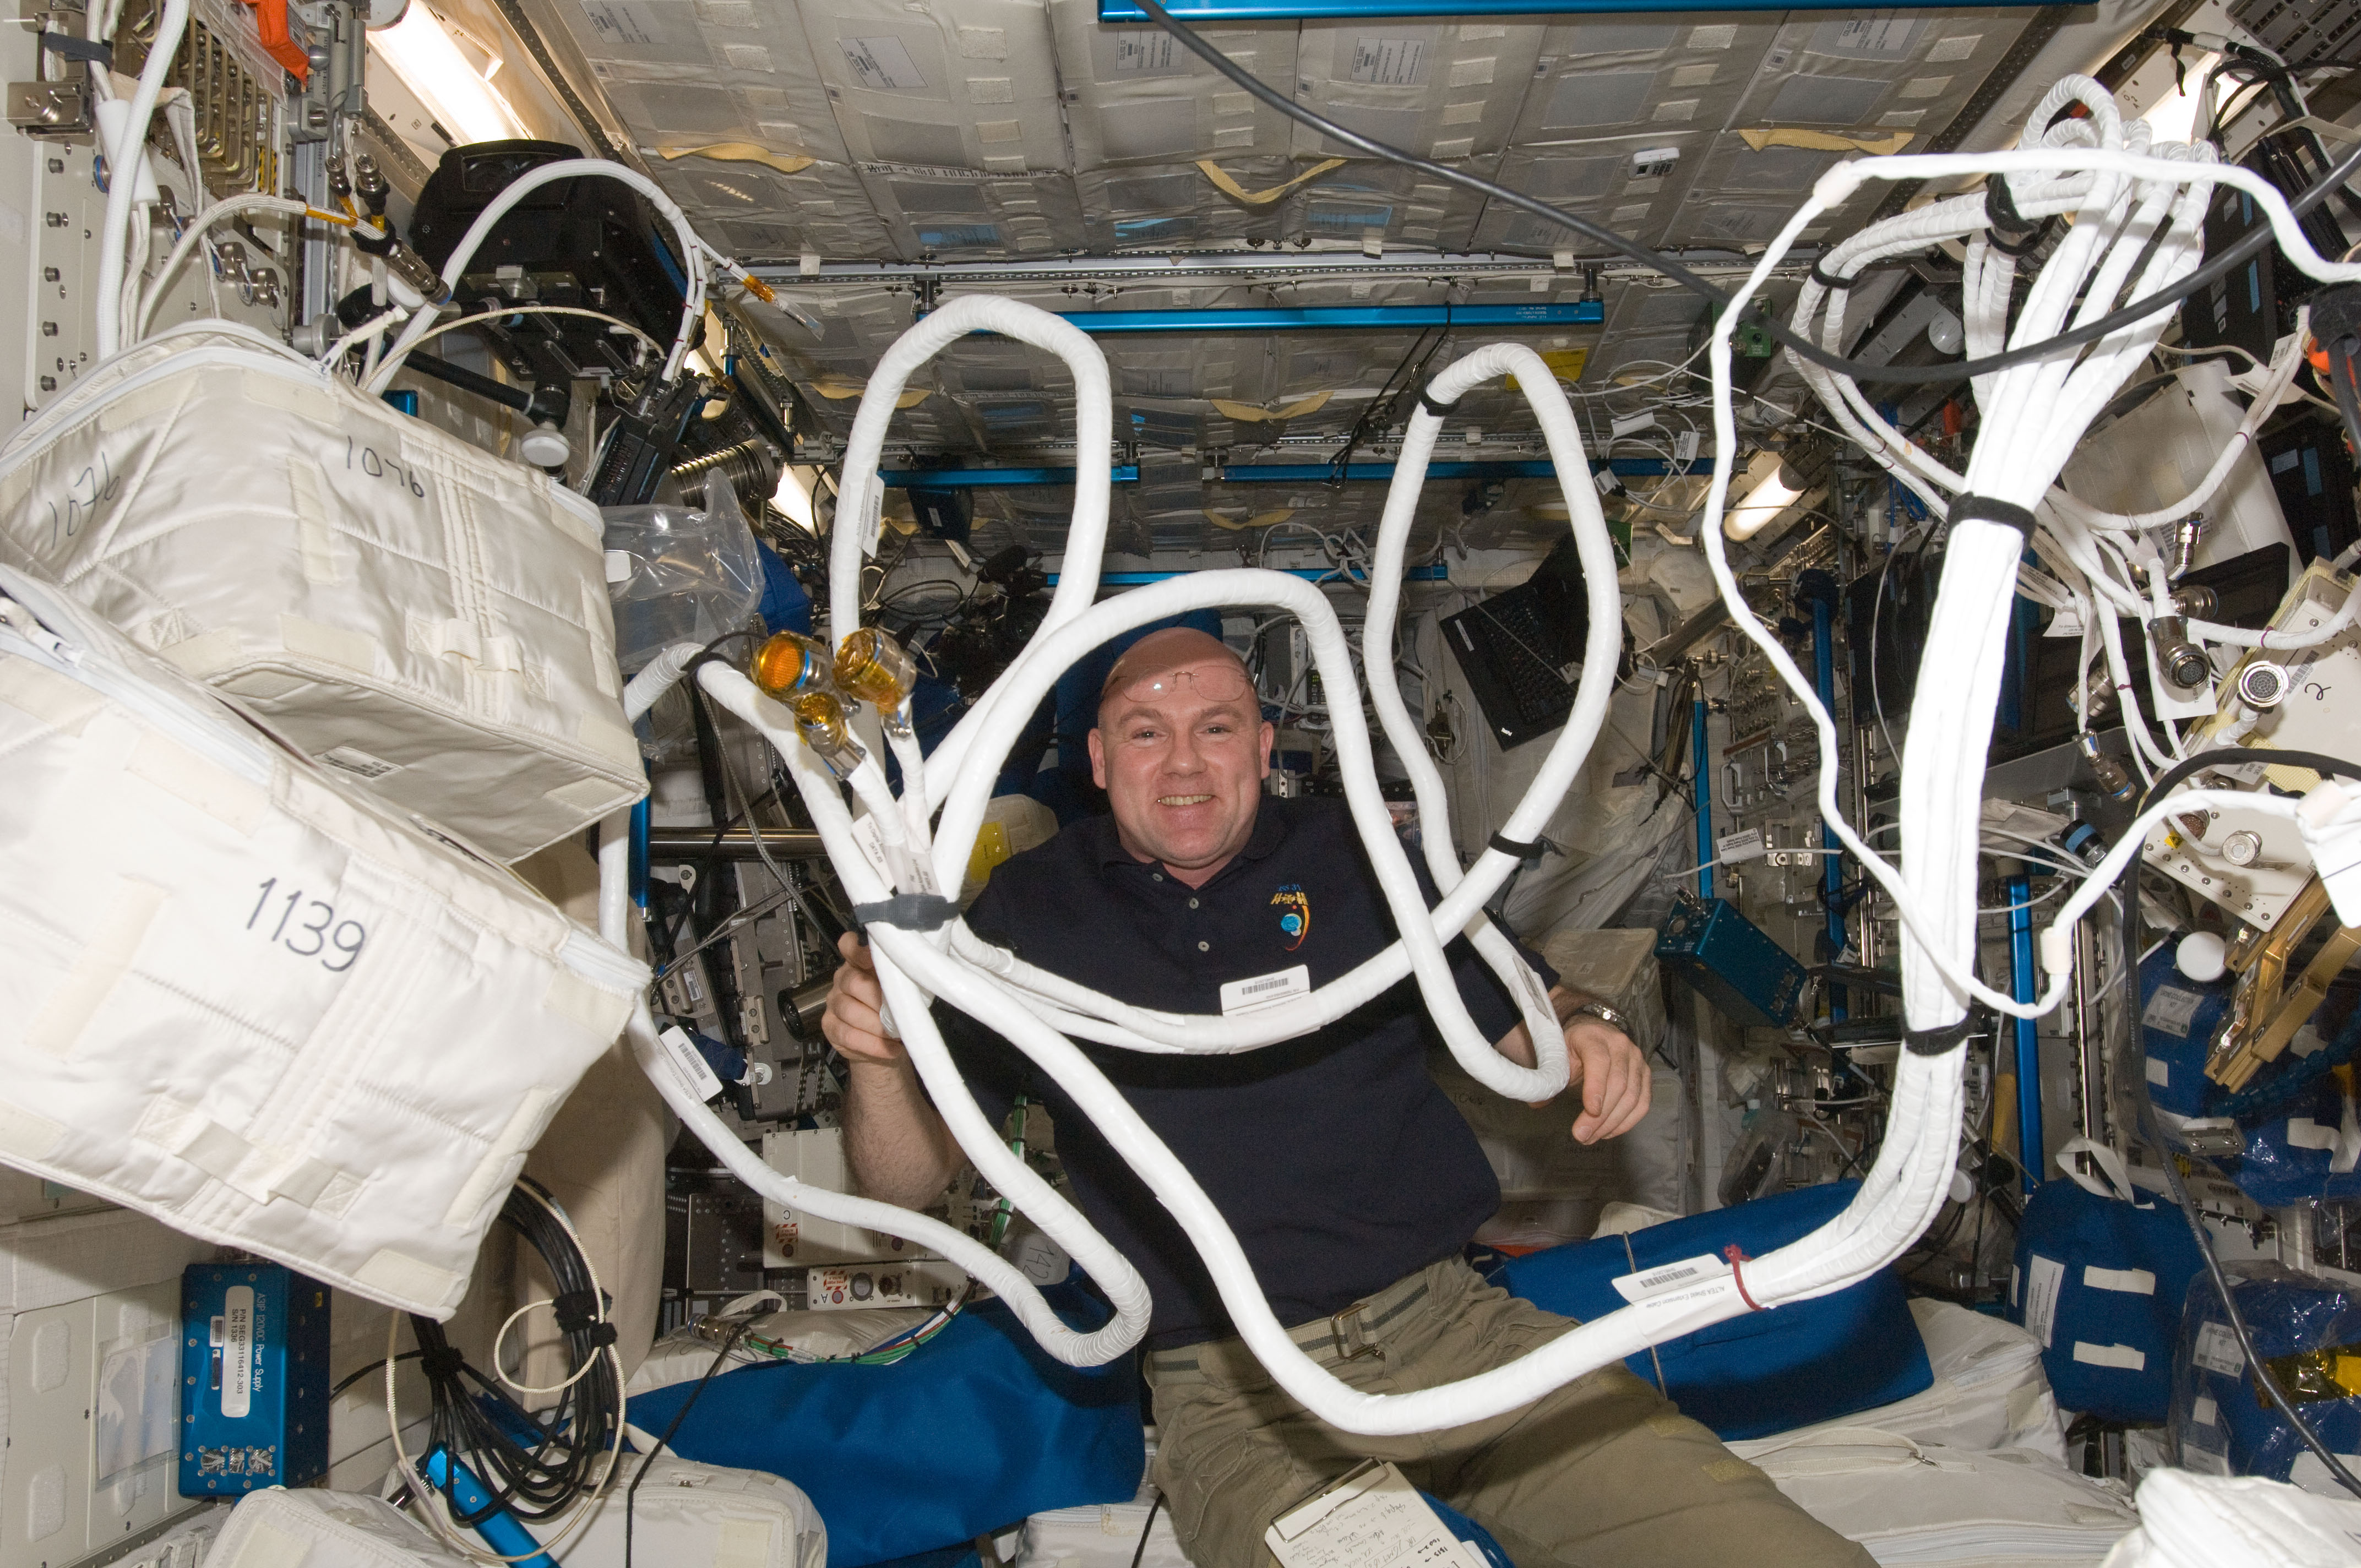 Astronaut Andre Kuipers with Equipment